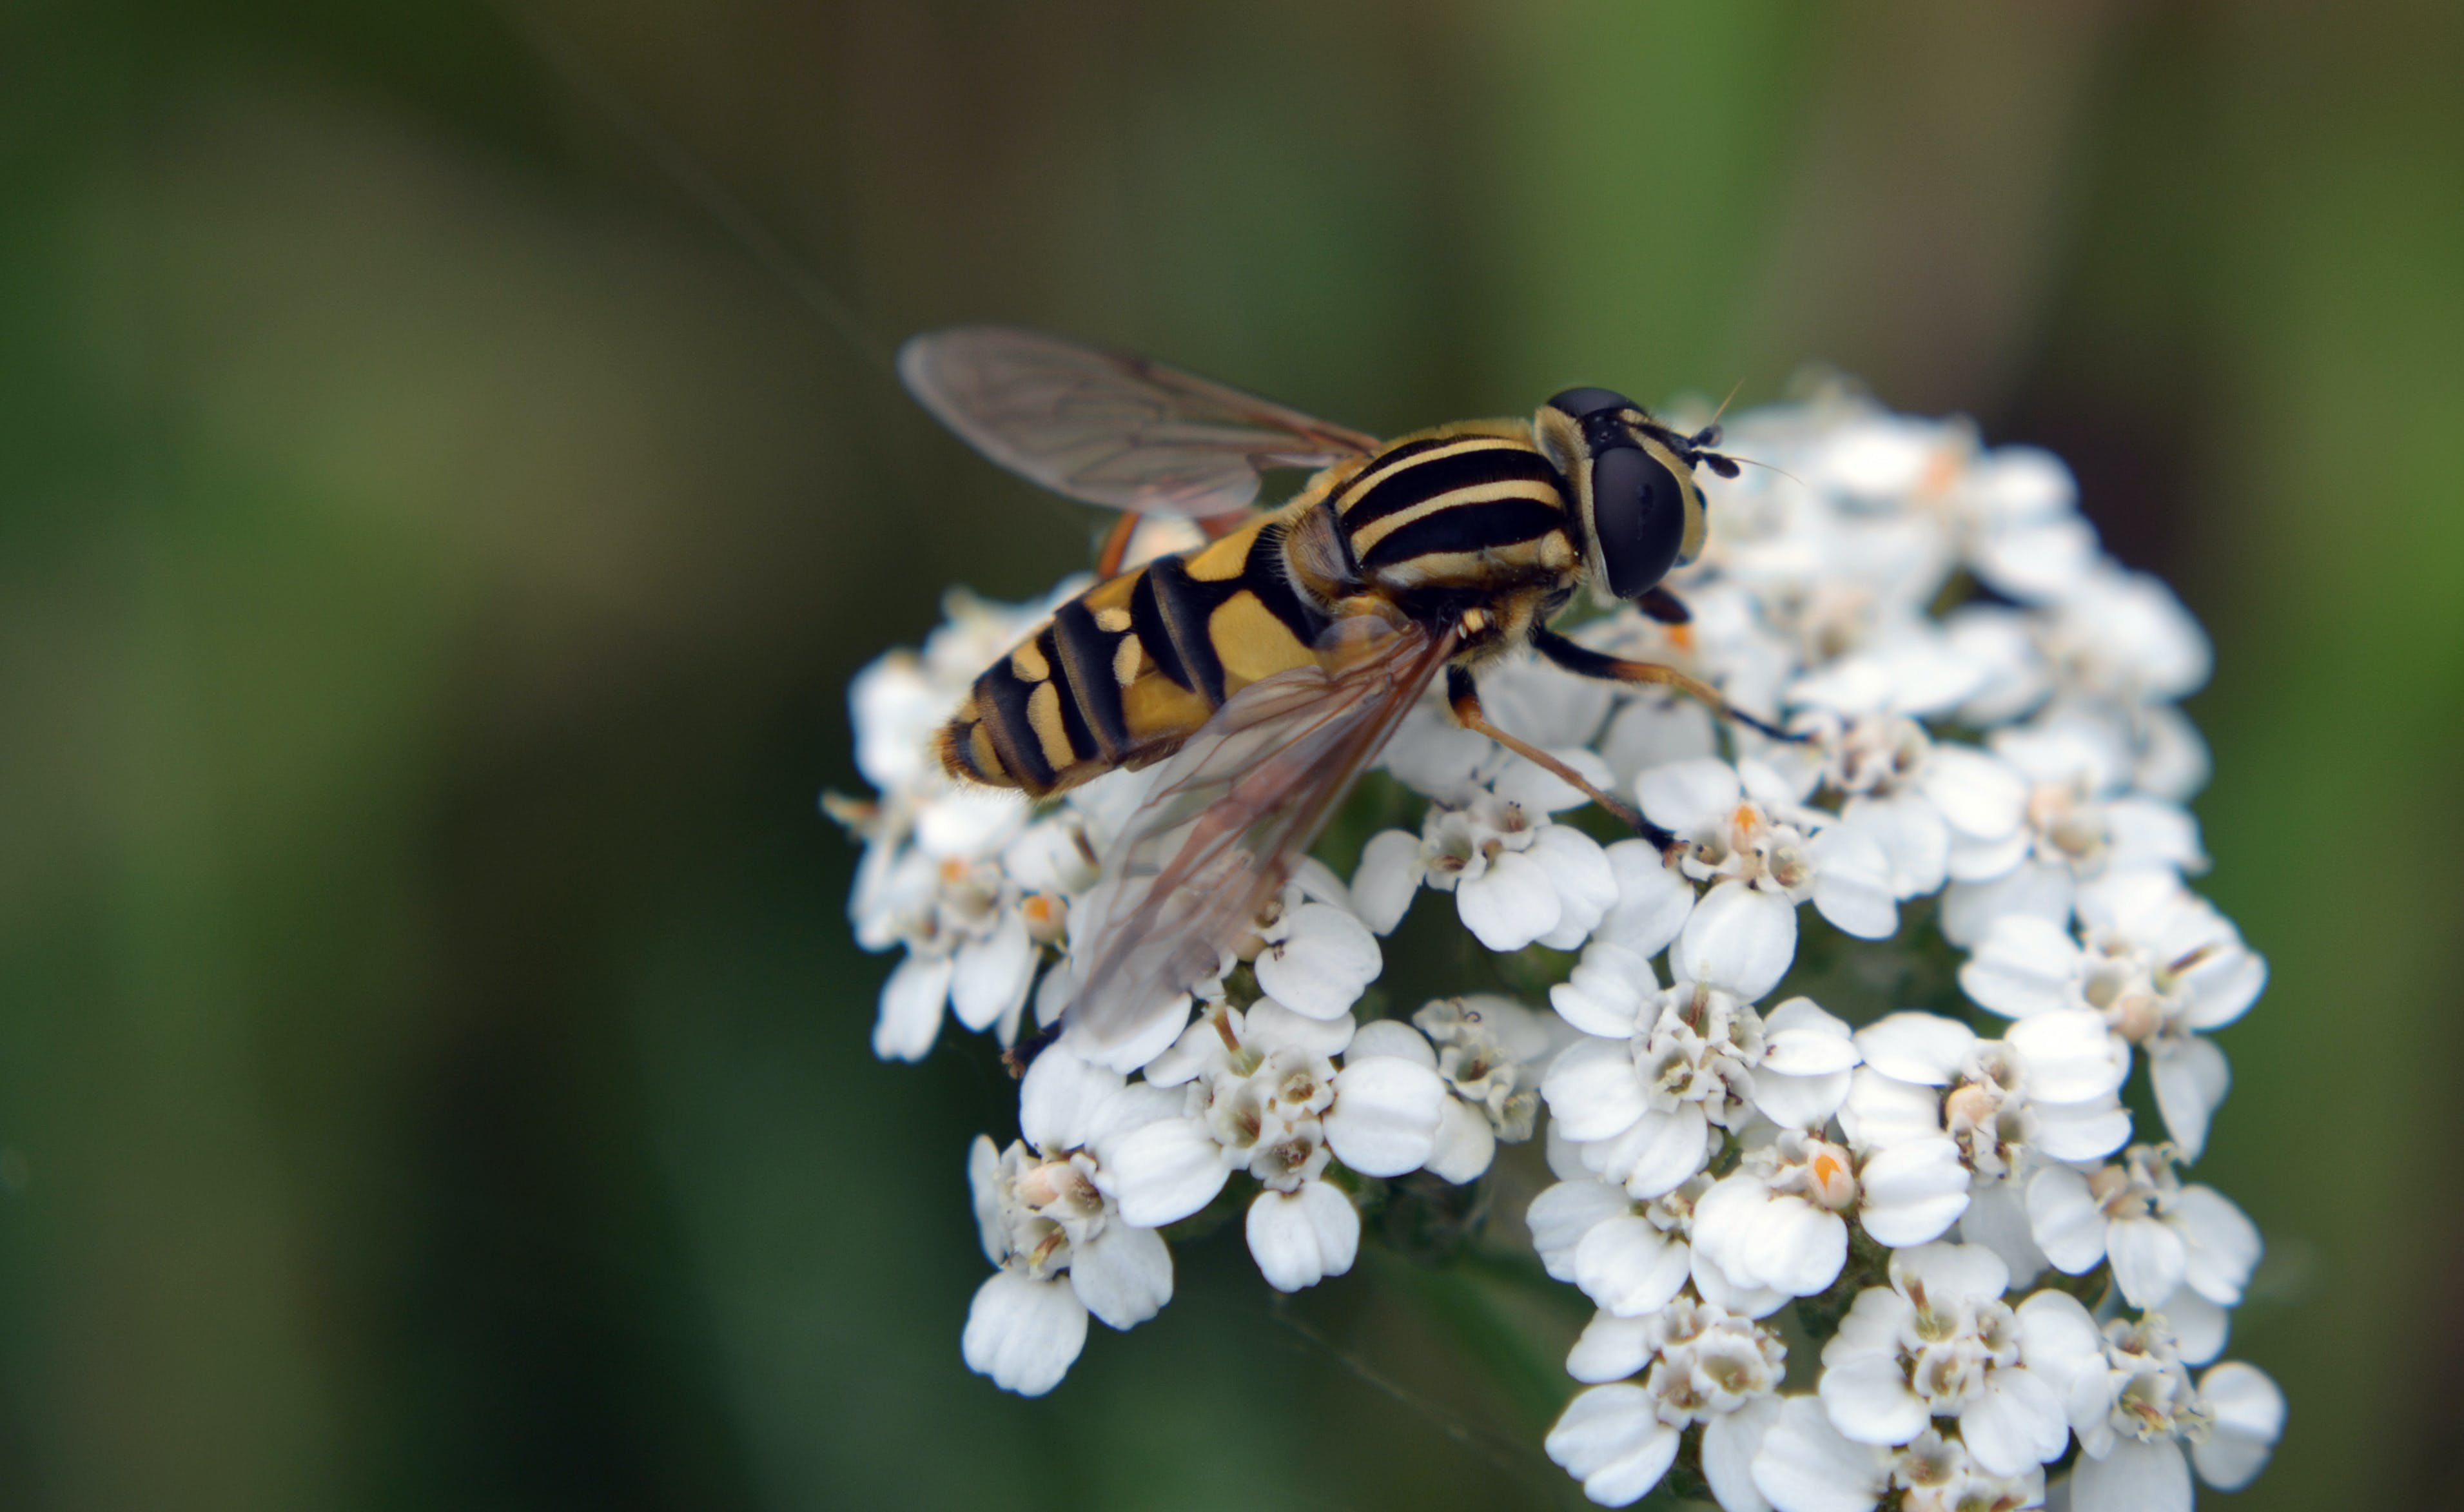 Macro Photography of Hoverfly on Flowers